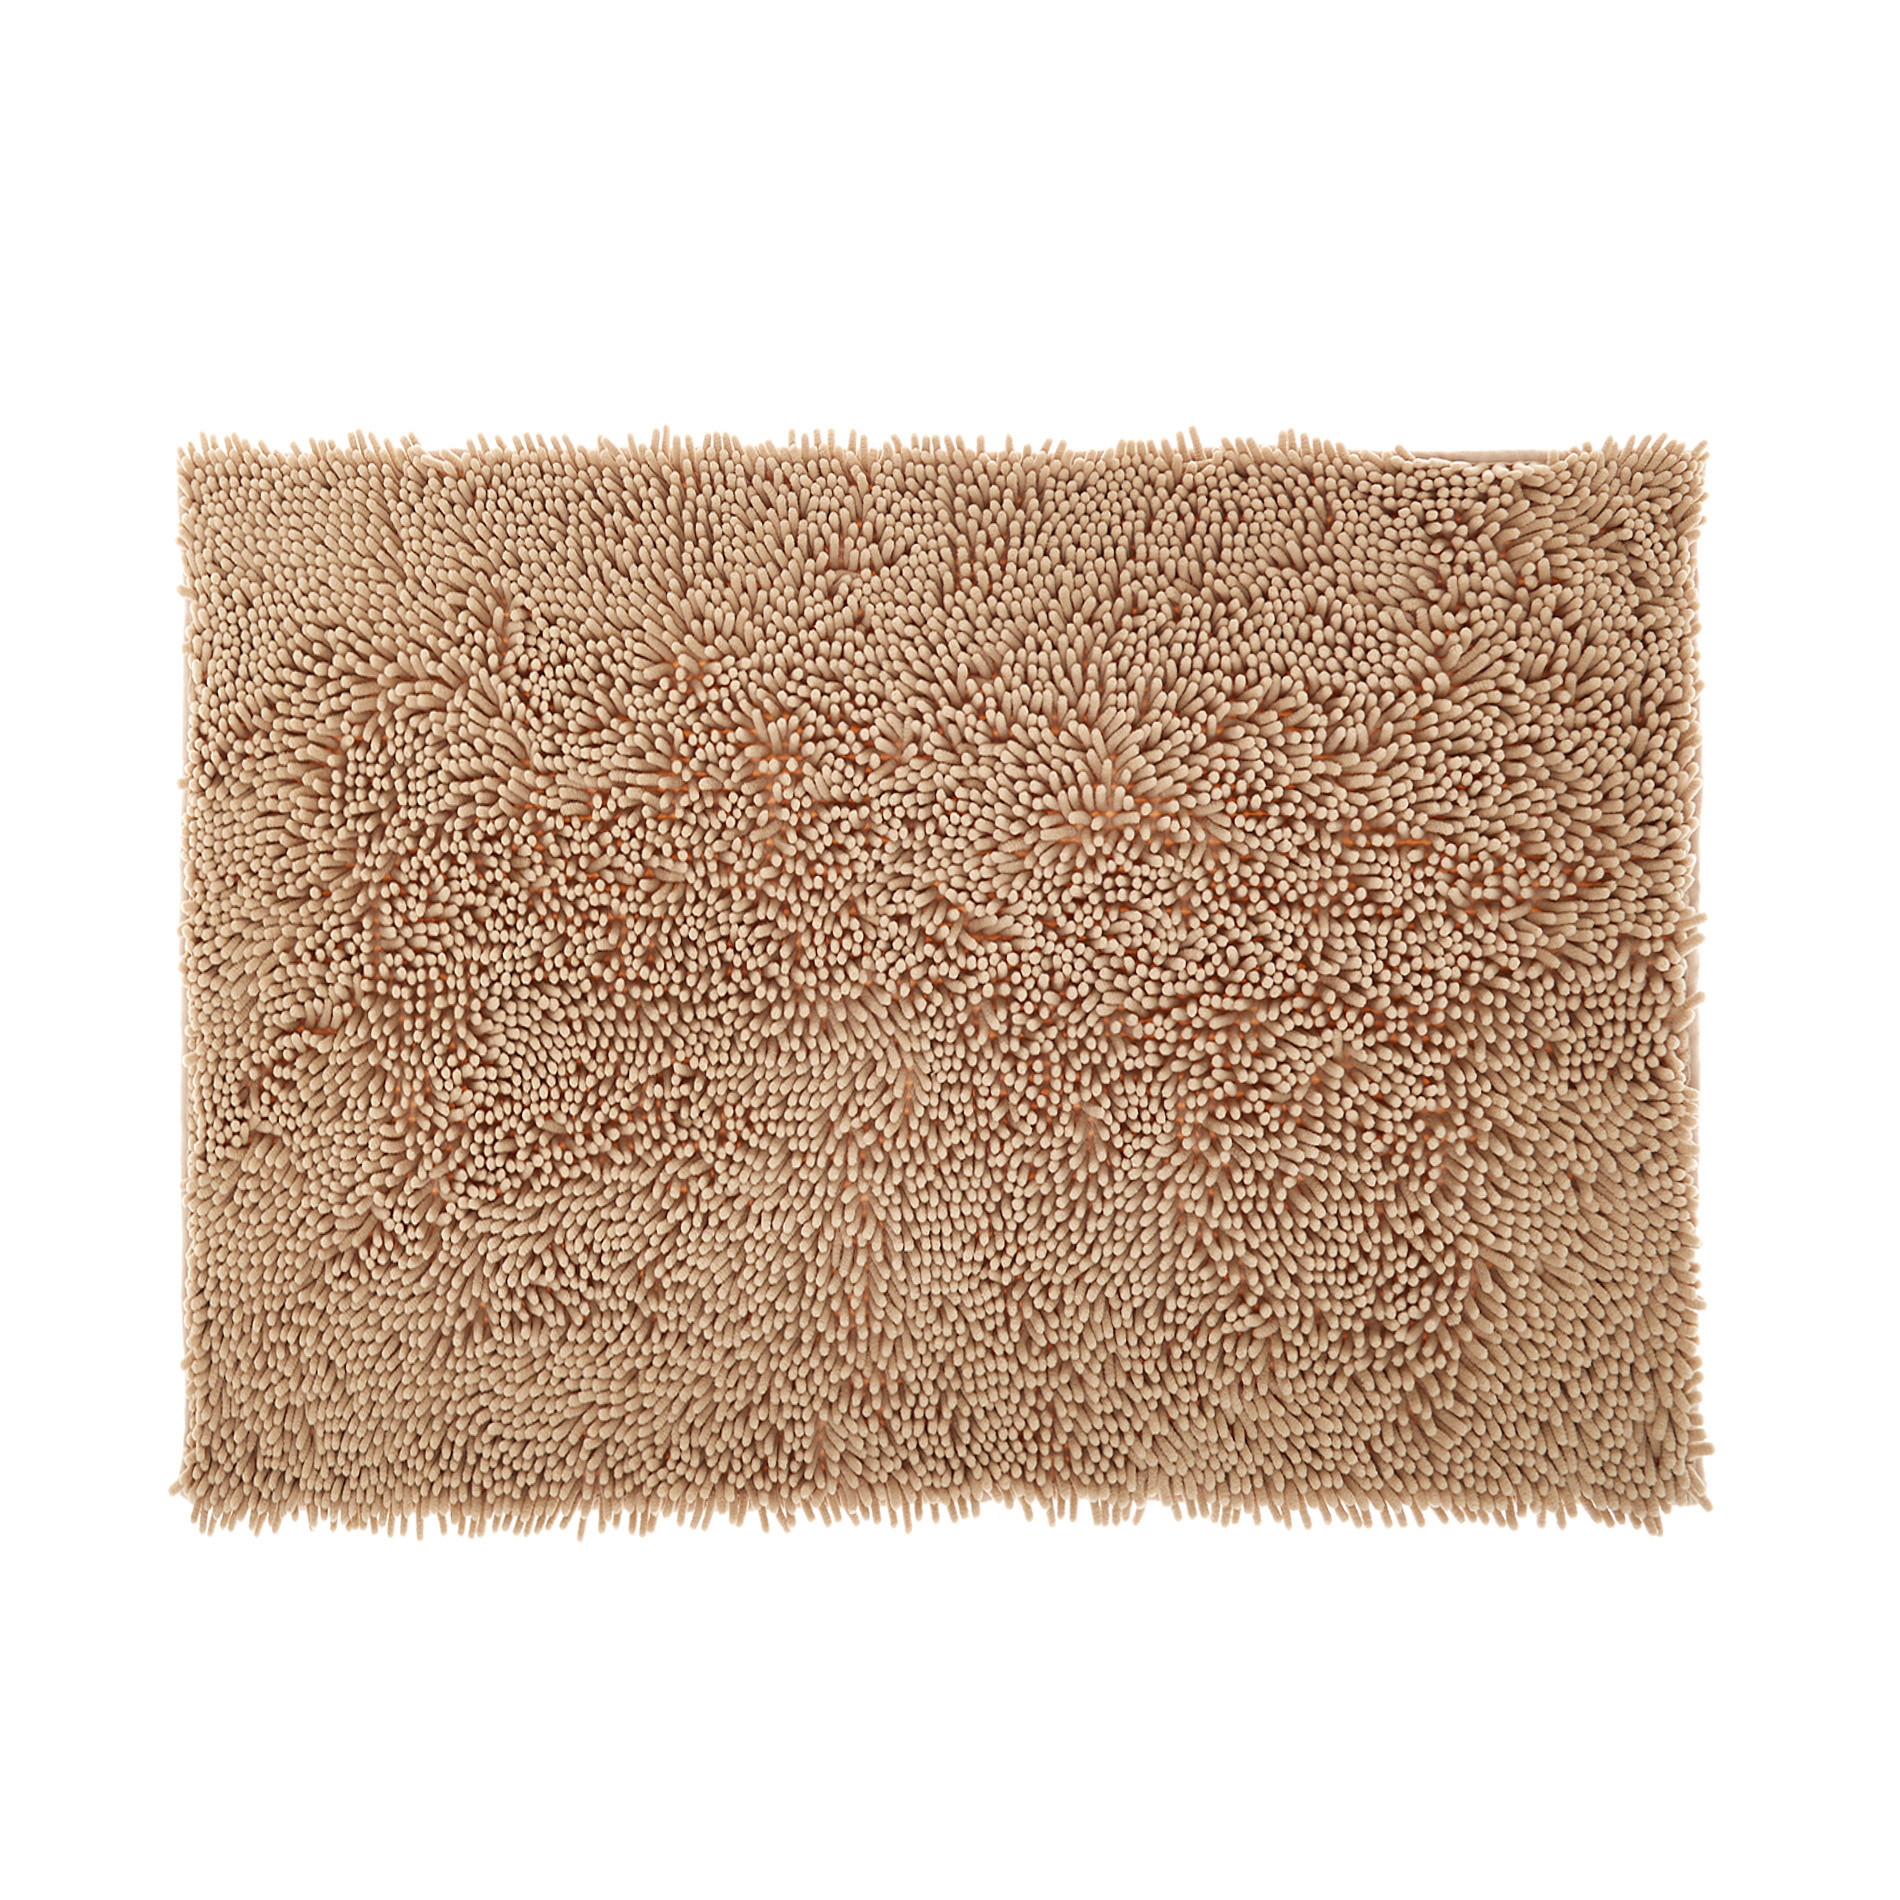 Tappeto bagno microfibra shaggy, Beige, large image number 0